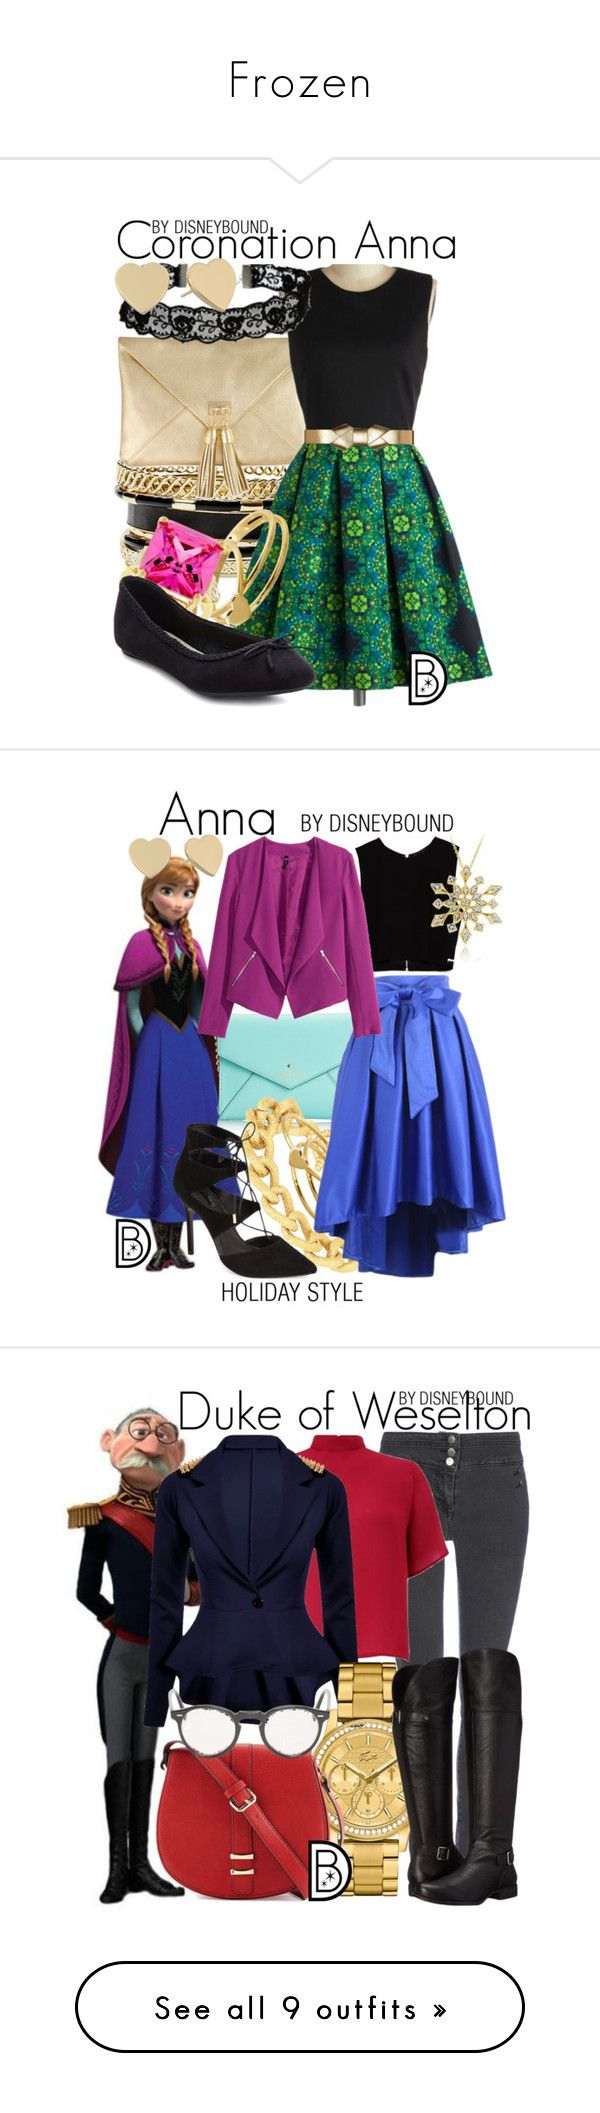 """Frozen"" by leslieakay ❤ liked on Polyvore featuring disney, disneybound, disneycharacter, GUESS, Gorjana, Marni, ASOS, Kate Bissett, Kate Spade and Adele Marie"